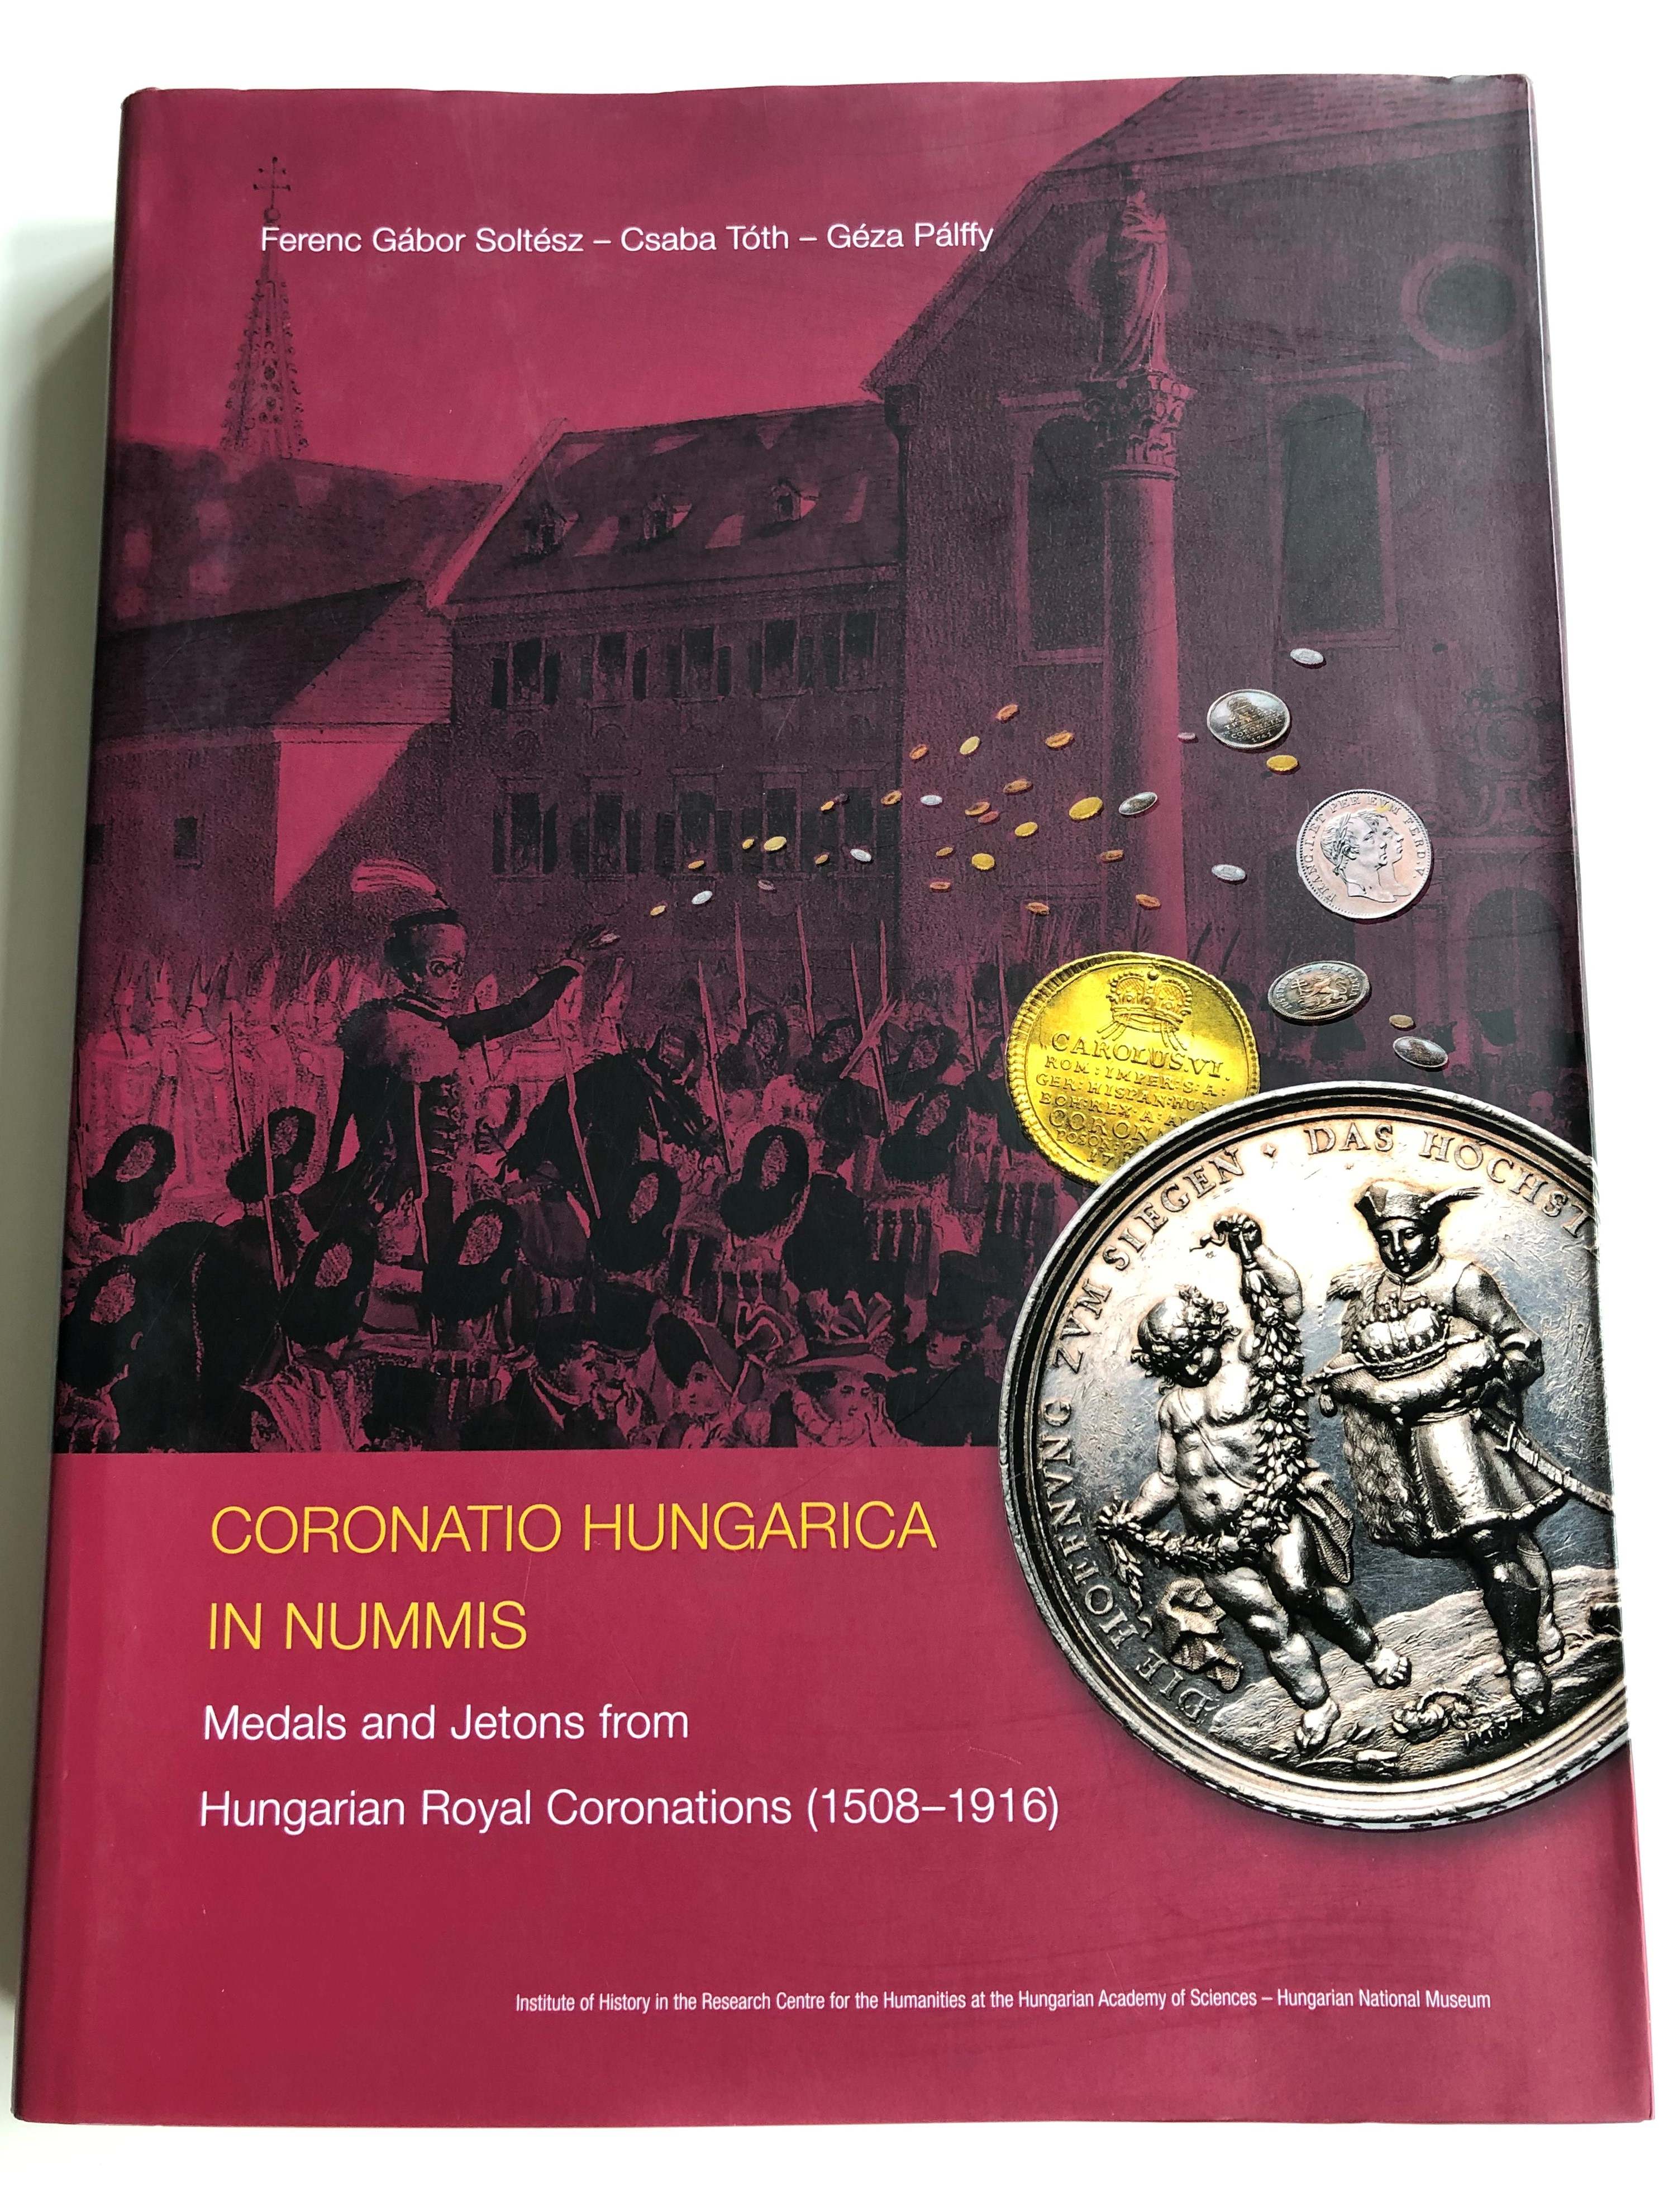 coronatio-hungarica-in-nummis-english-language-catalog-of-hungarian-medals-and-jetons-from-hungarian-royal-coronations-1508-1916-1.jpg